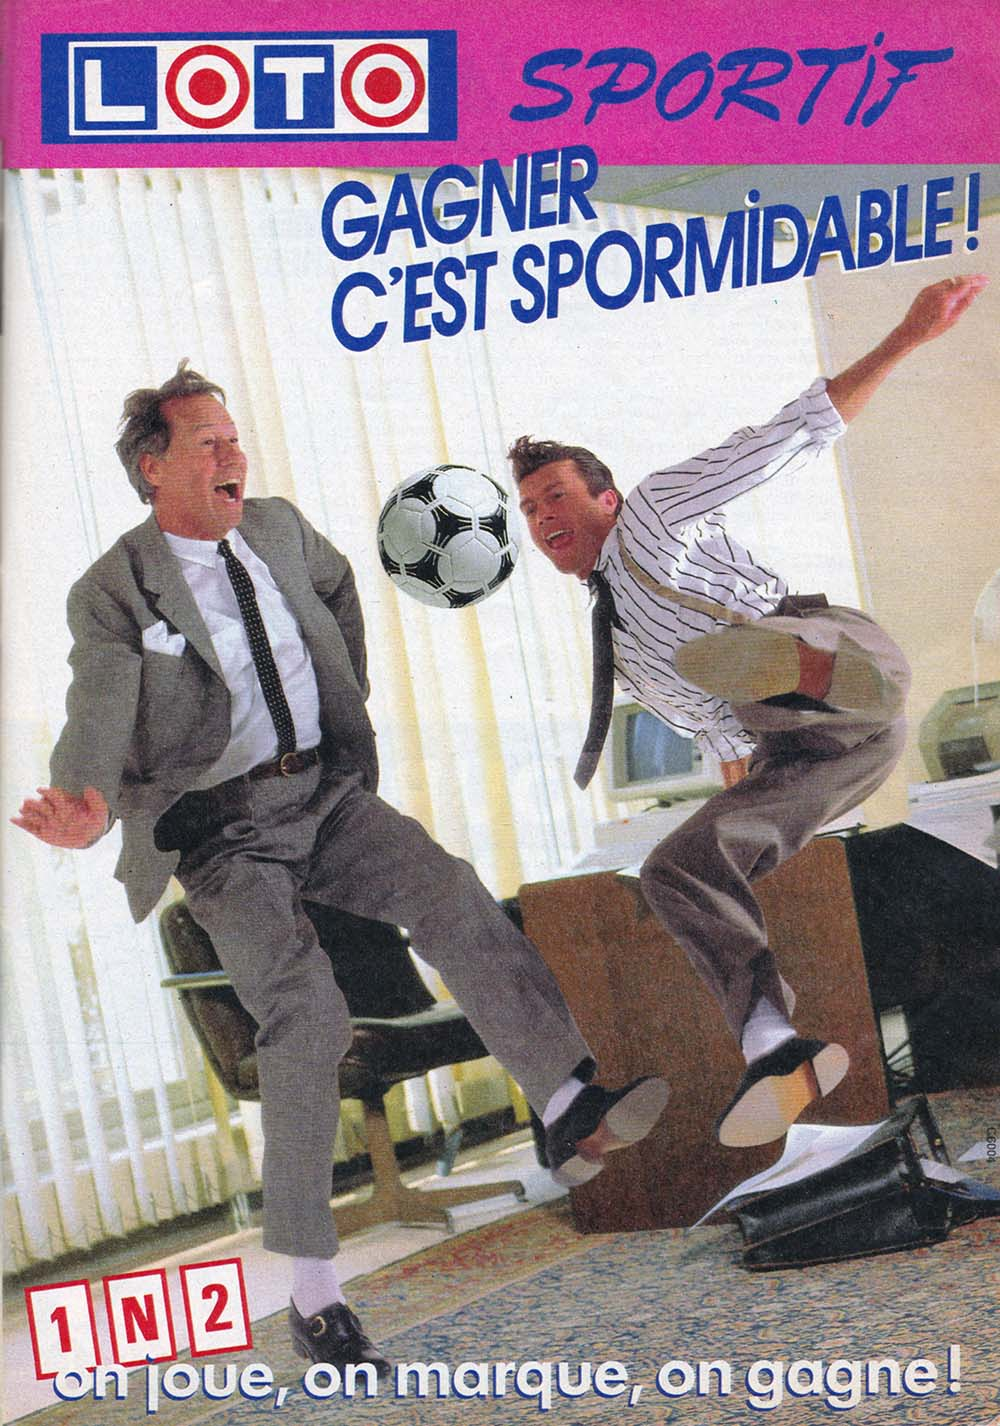 Pub Loto Sportif 1N2 version 1 (1986)